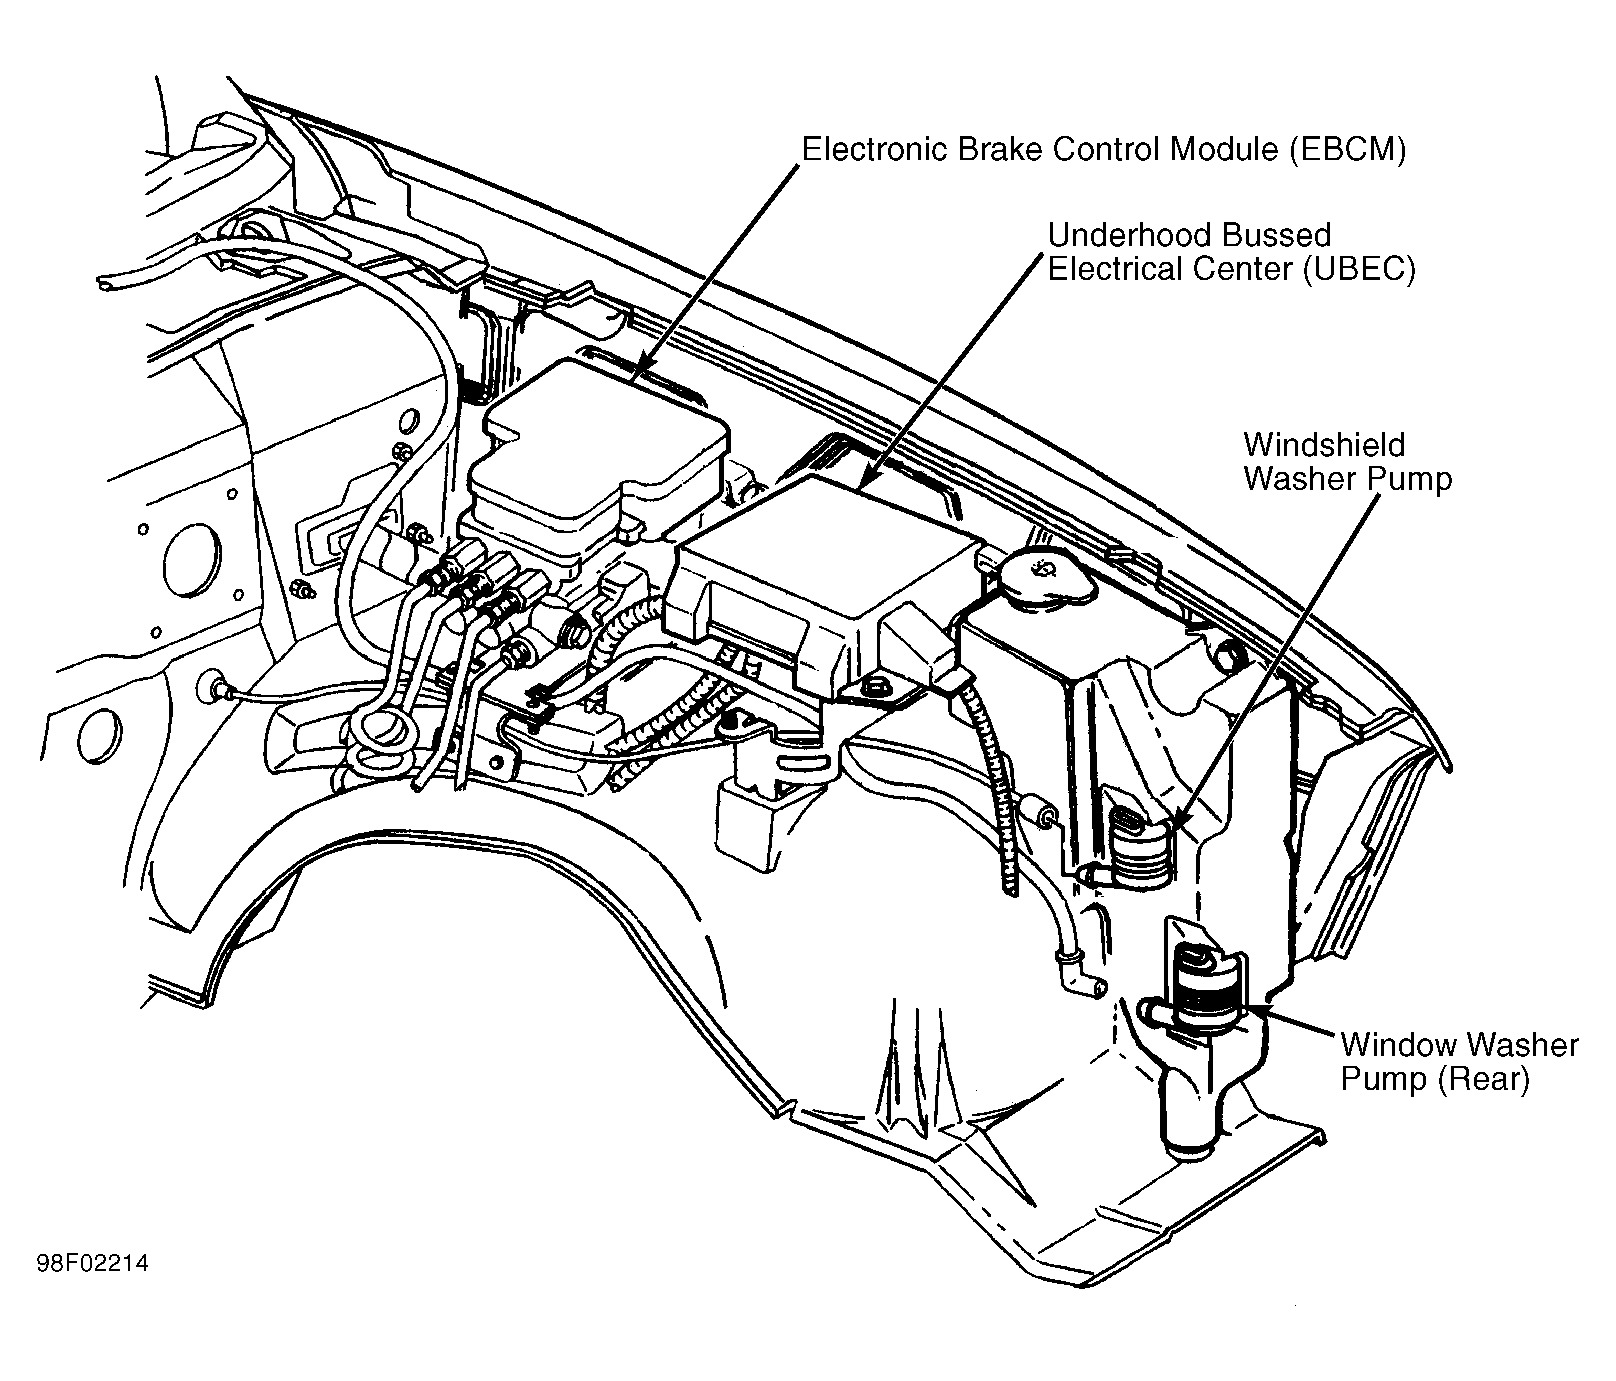 1998 gmc sonoma fuse box detailed schematics diagram rh antonartgallery com  1995 GMC Sonoma 1993 GMC